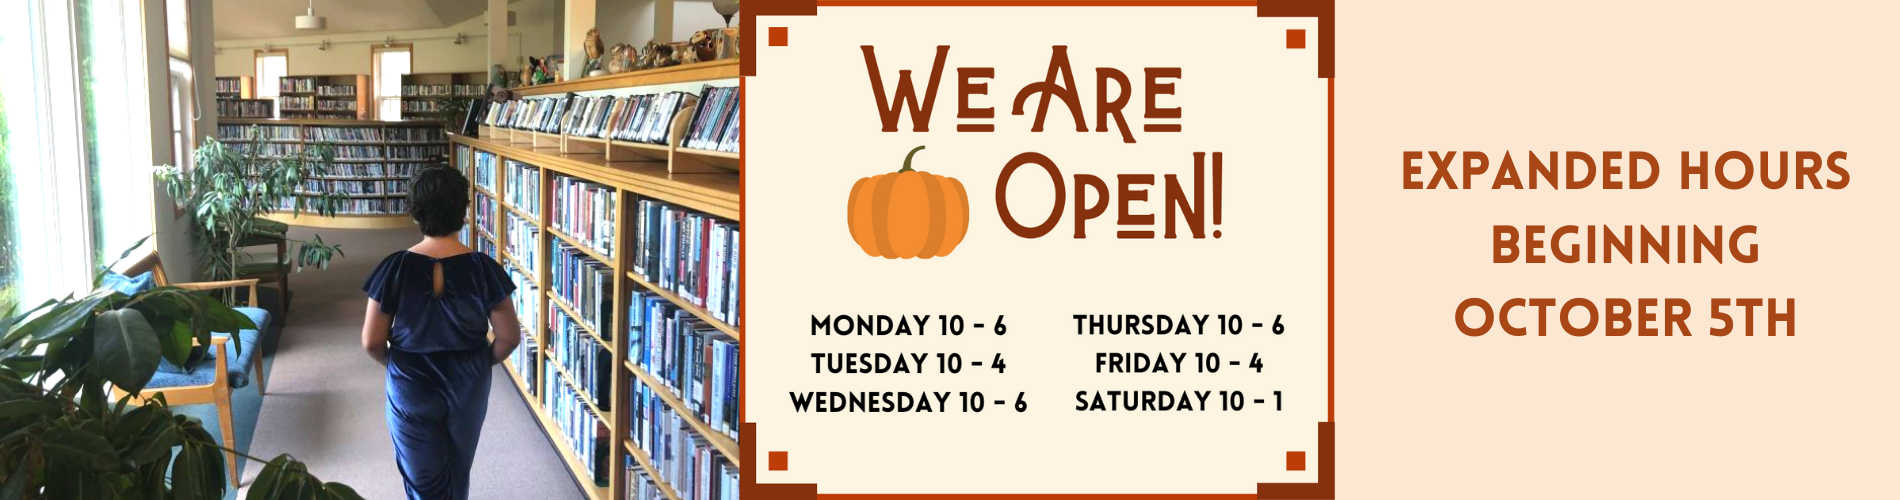 expanded hours beginning ooooctober 5th(1)